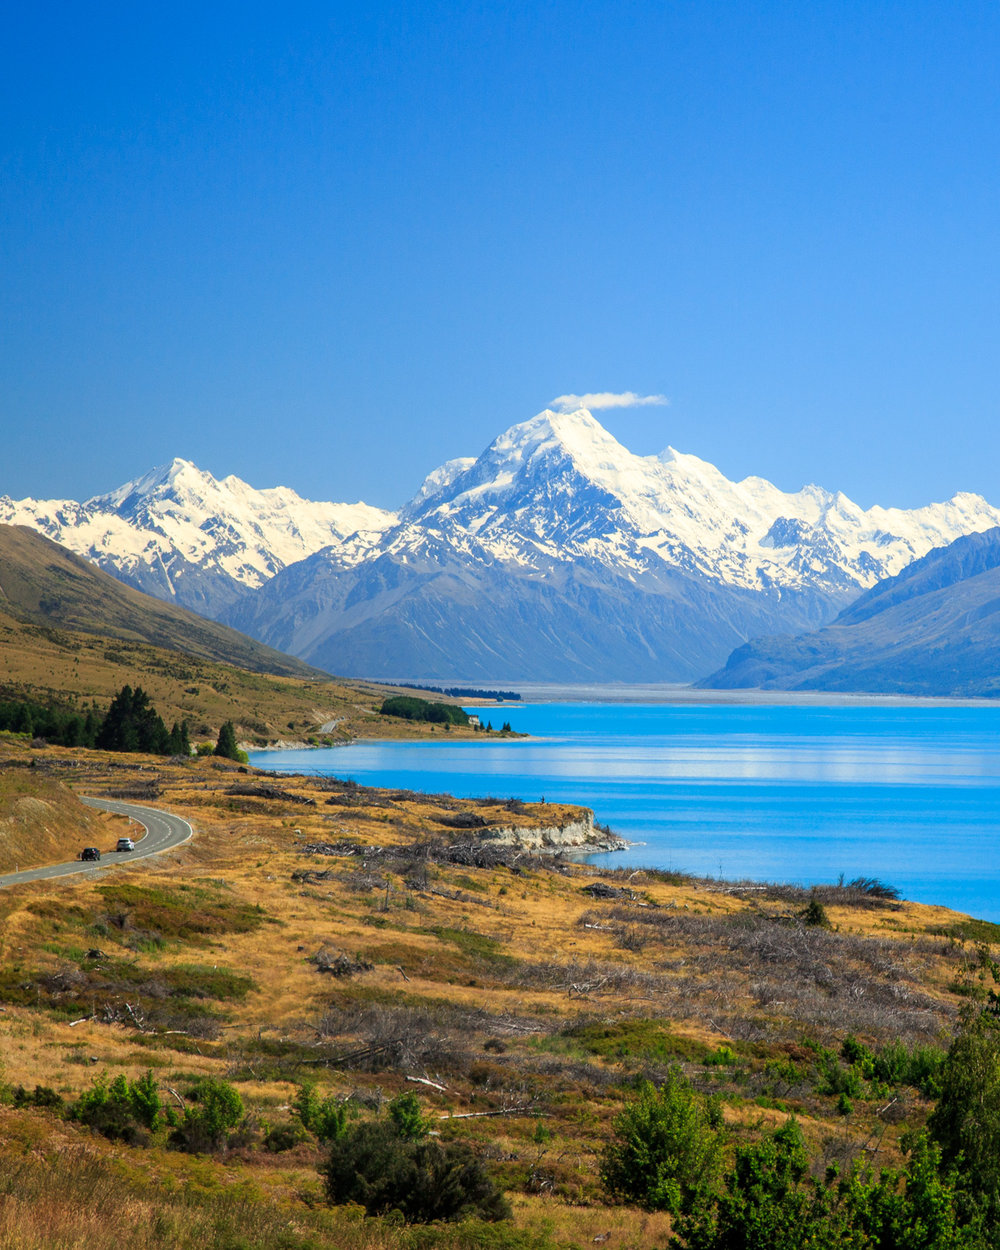 Instagrammable spots of New Zealand: Highway 80, Mount Cook Road